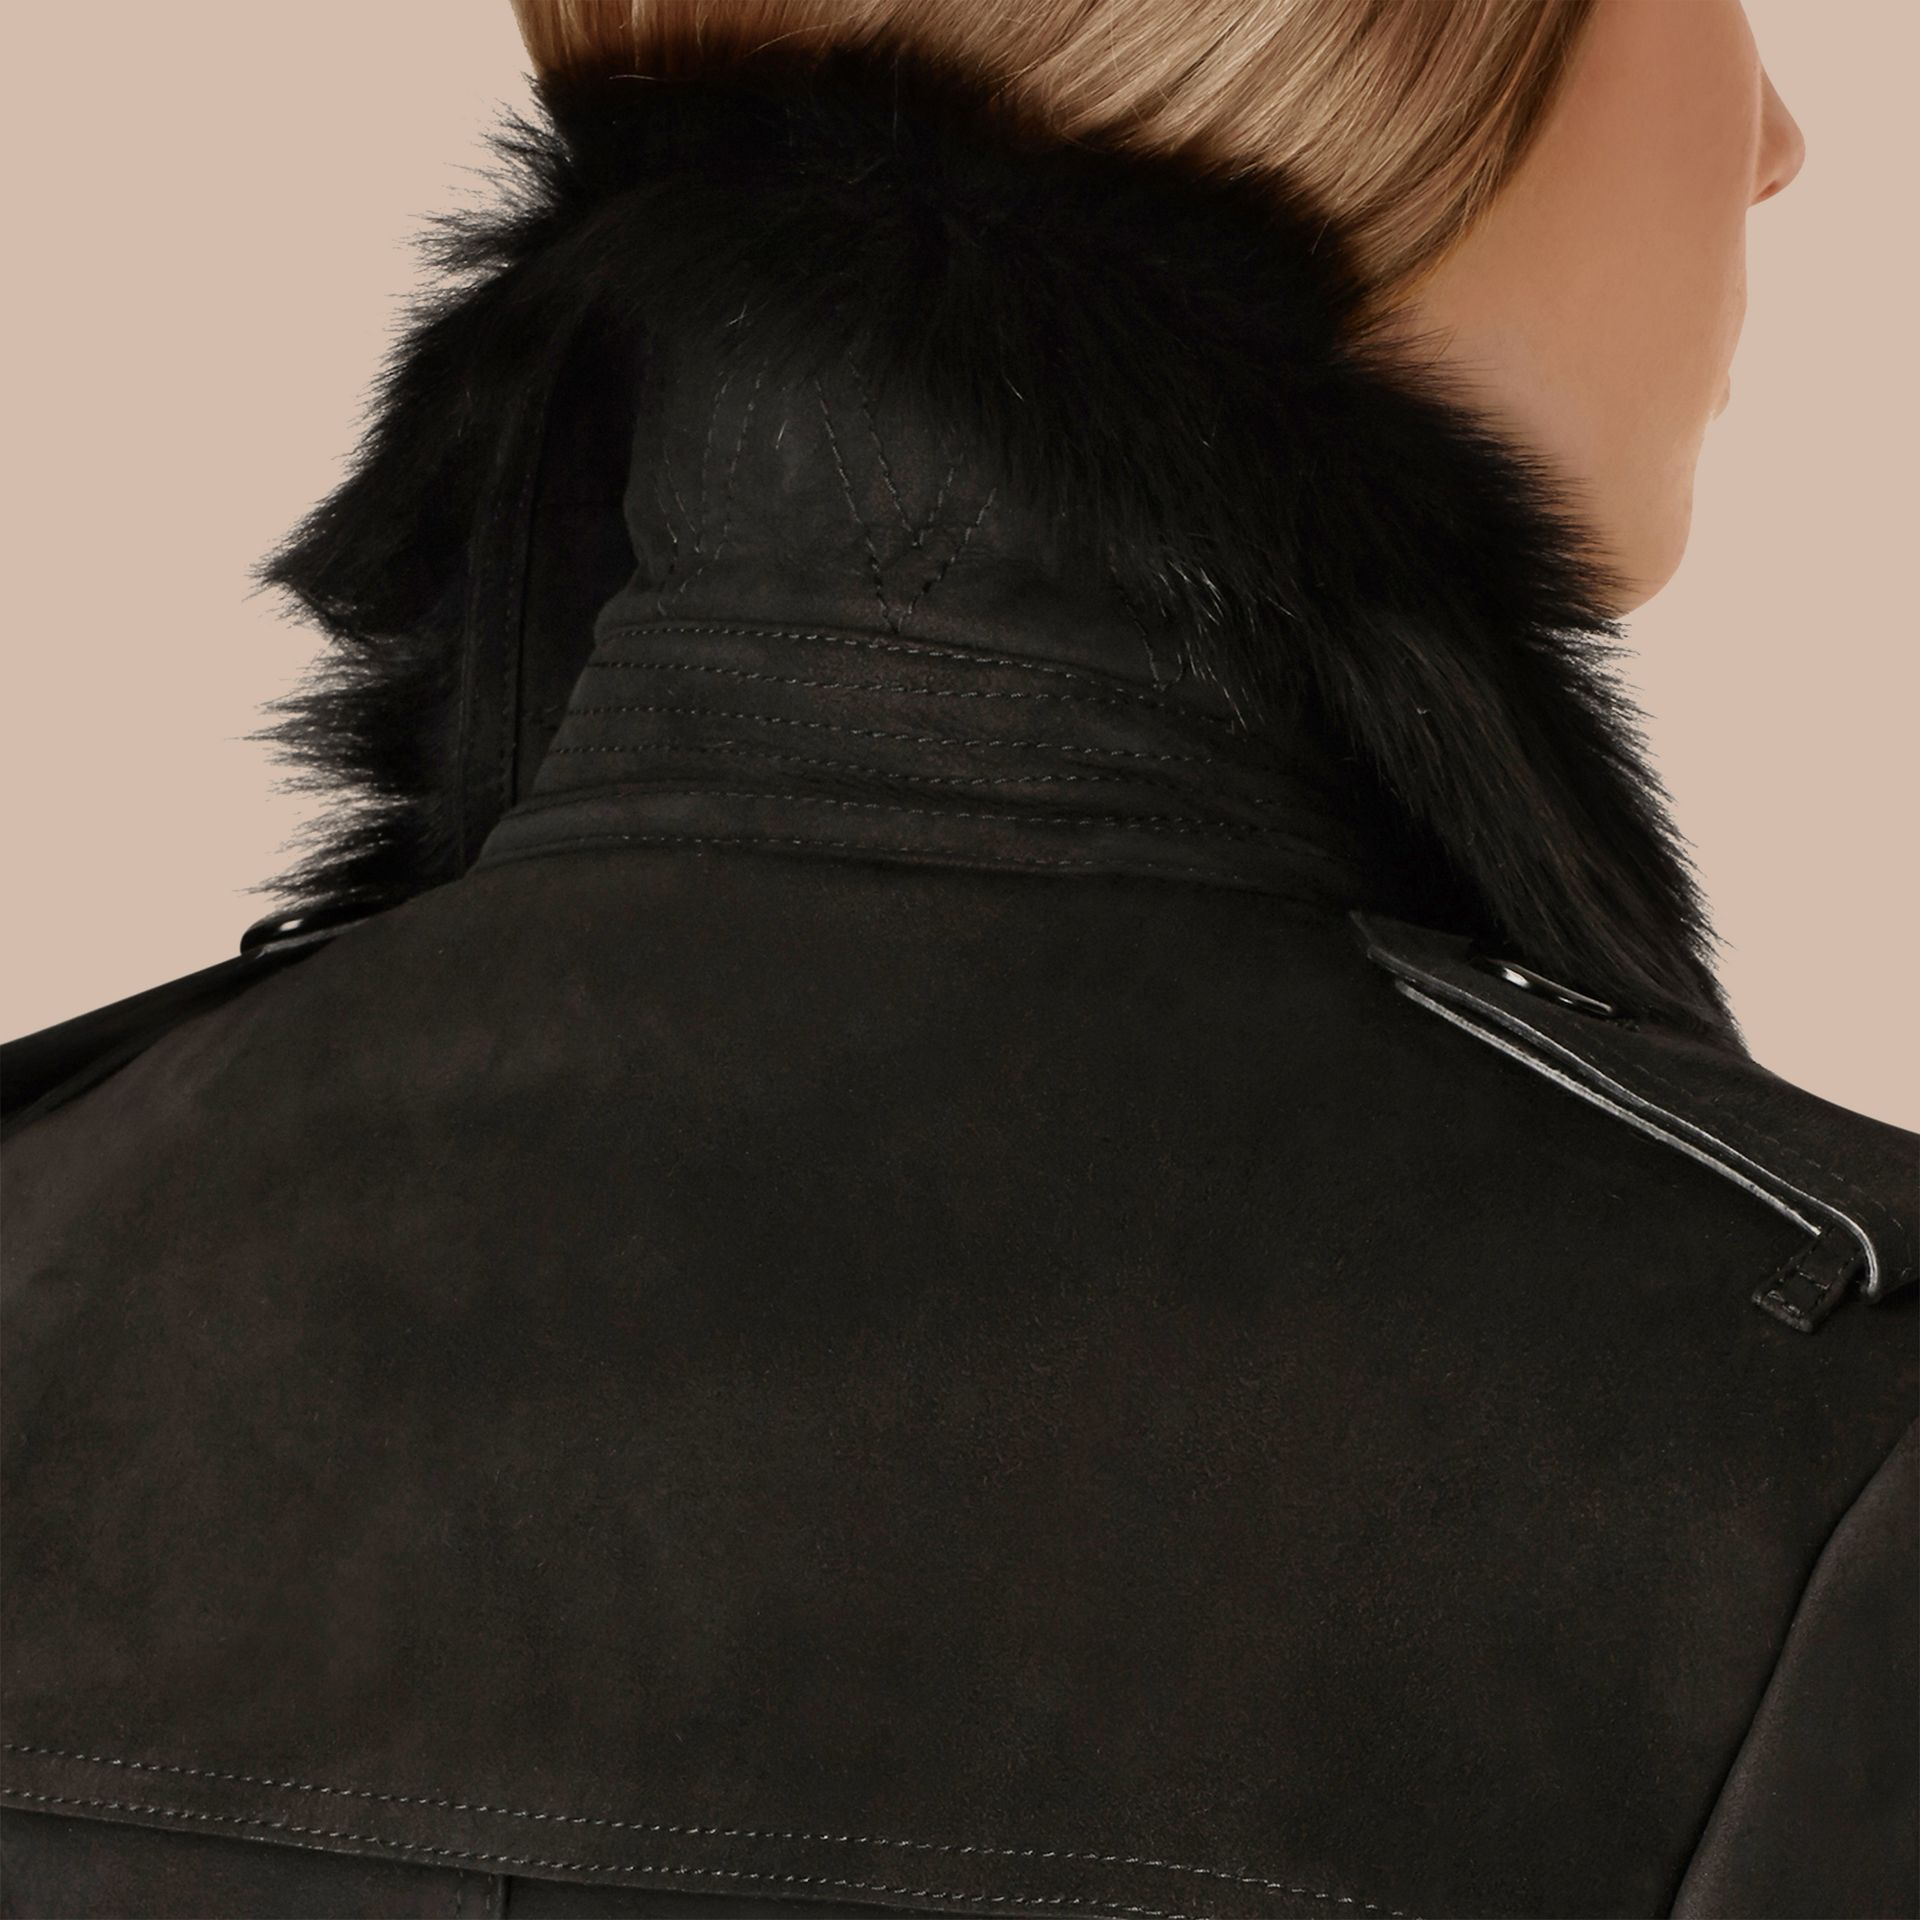 Black Shearling Trench Coat Black - gallery image 5